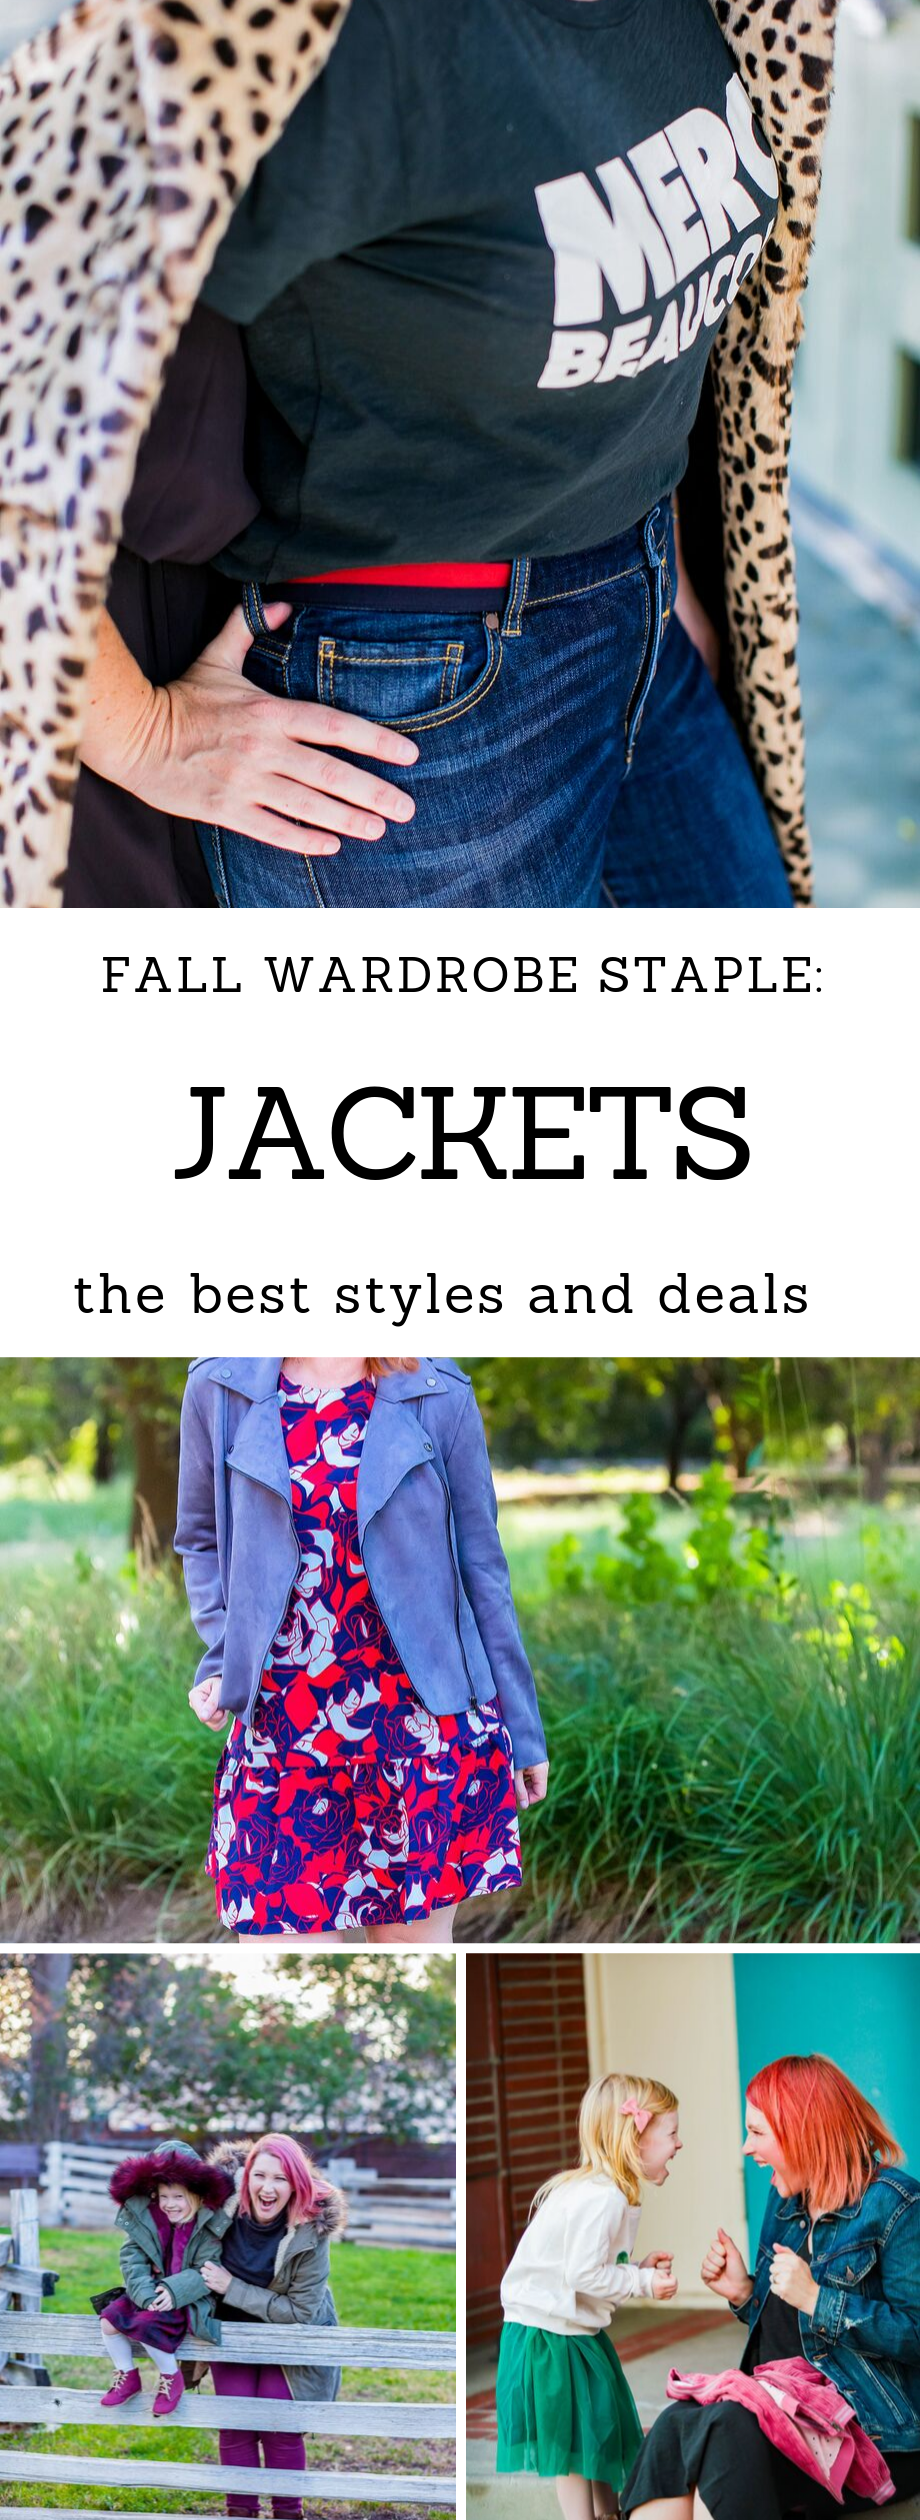 Looking for fall jackets? This is the ultimate guide to fall jacket styles (with some GREAT deals)!